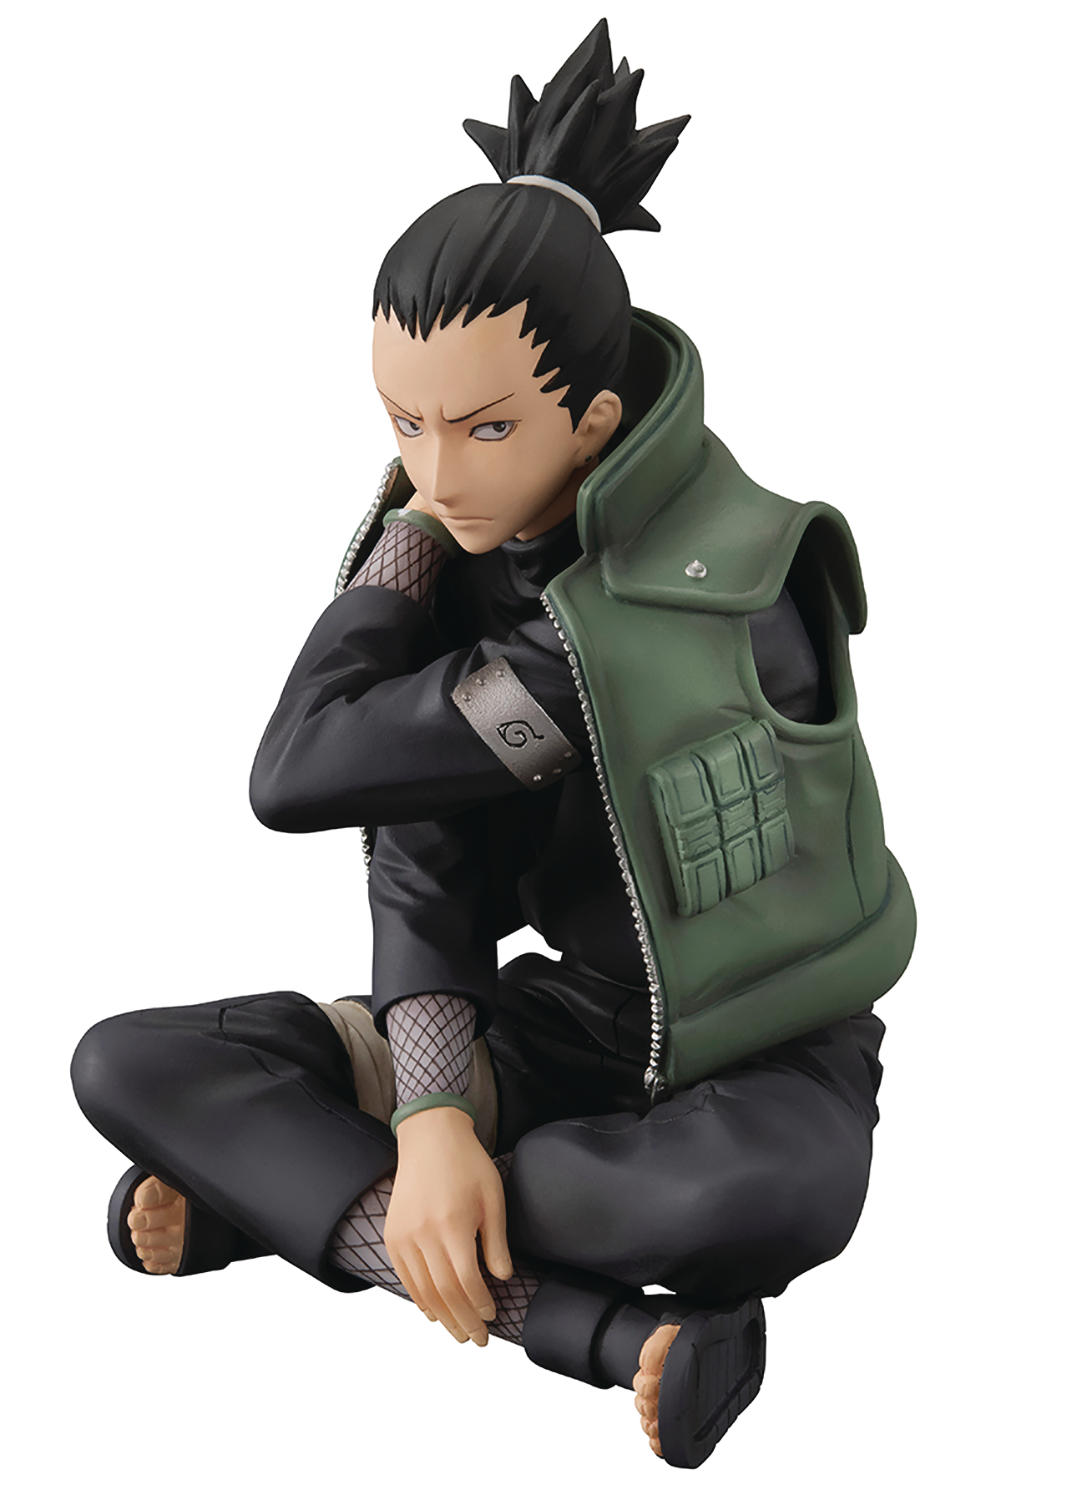 GEM SERIES NARUTO NARA SHIKAMARU PVC FIG